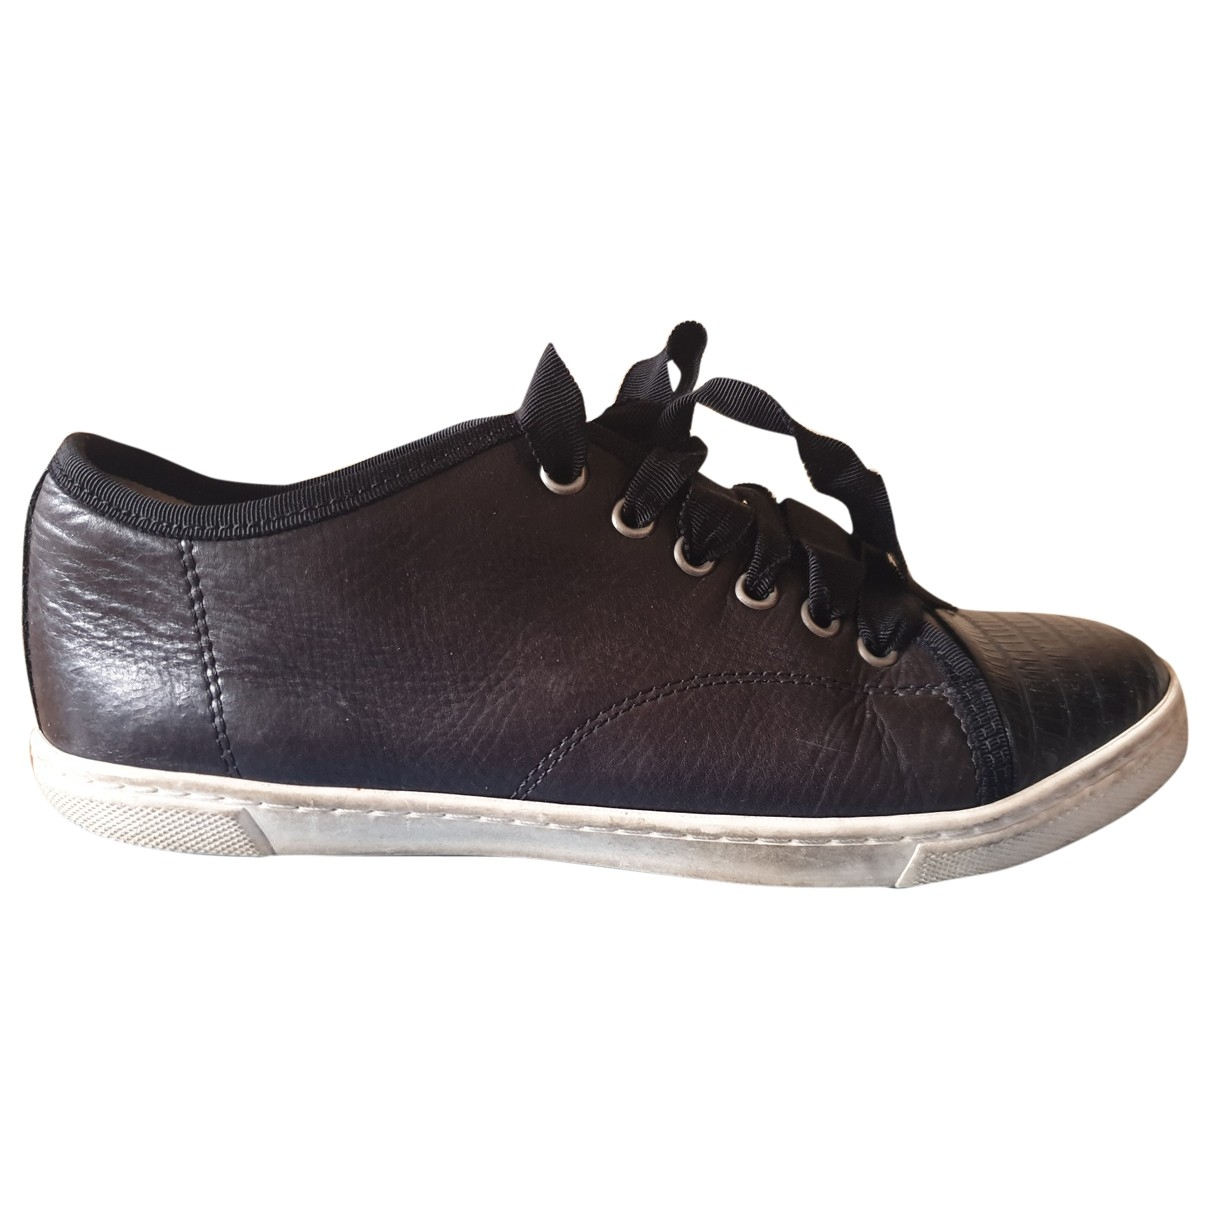 Lanvin \N Black Leather Trainers for Women 37 EU